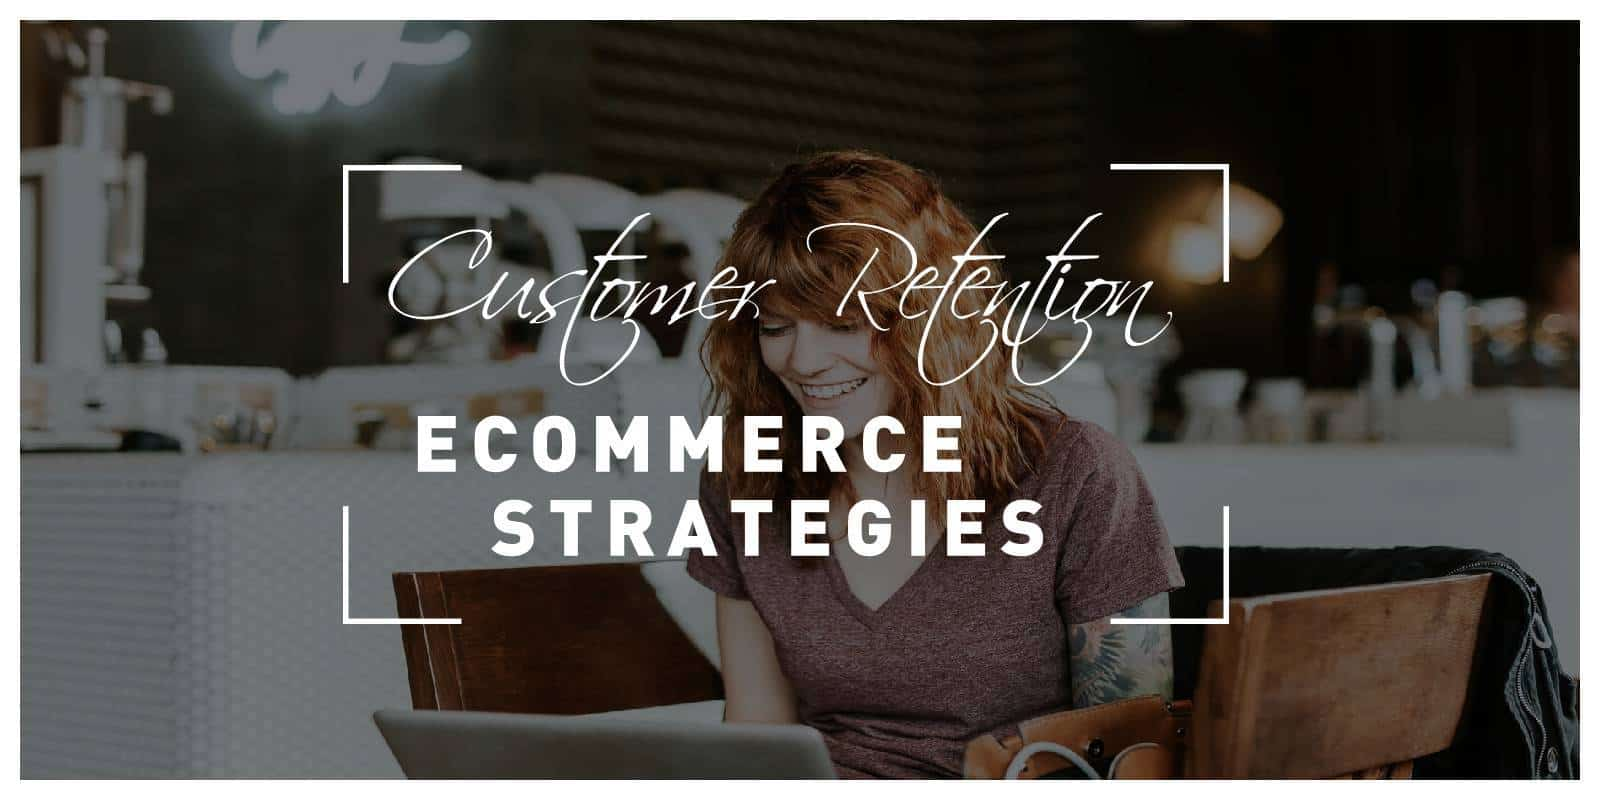 Customer Retention Strategies for eCommerce Websites That Will Increase Sales and Customer Loyalty